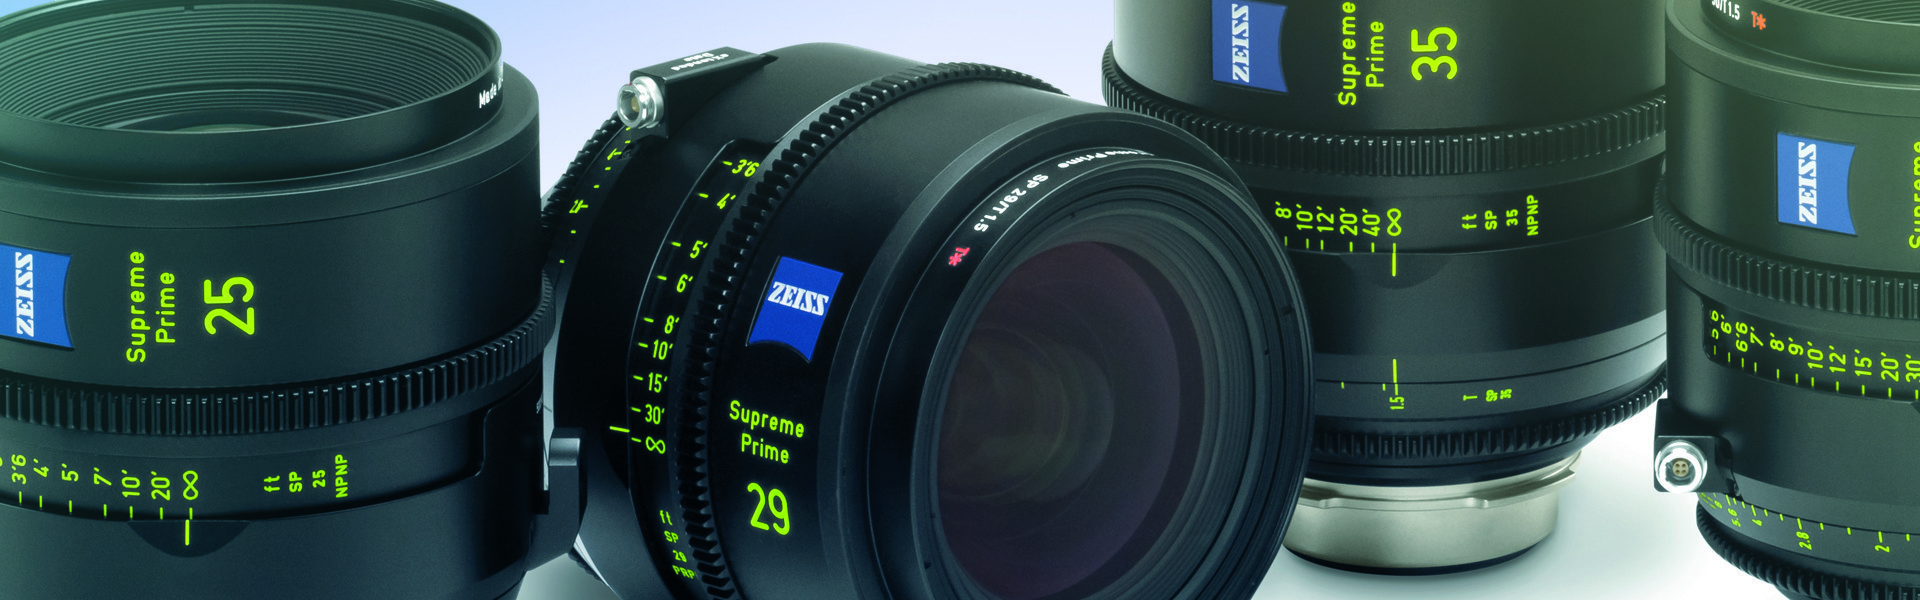 Header image for article ZEISS Announces New Supreme Prime Lenses